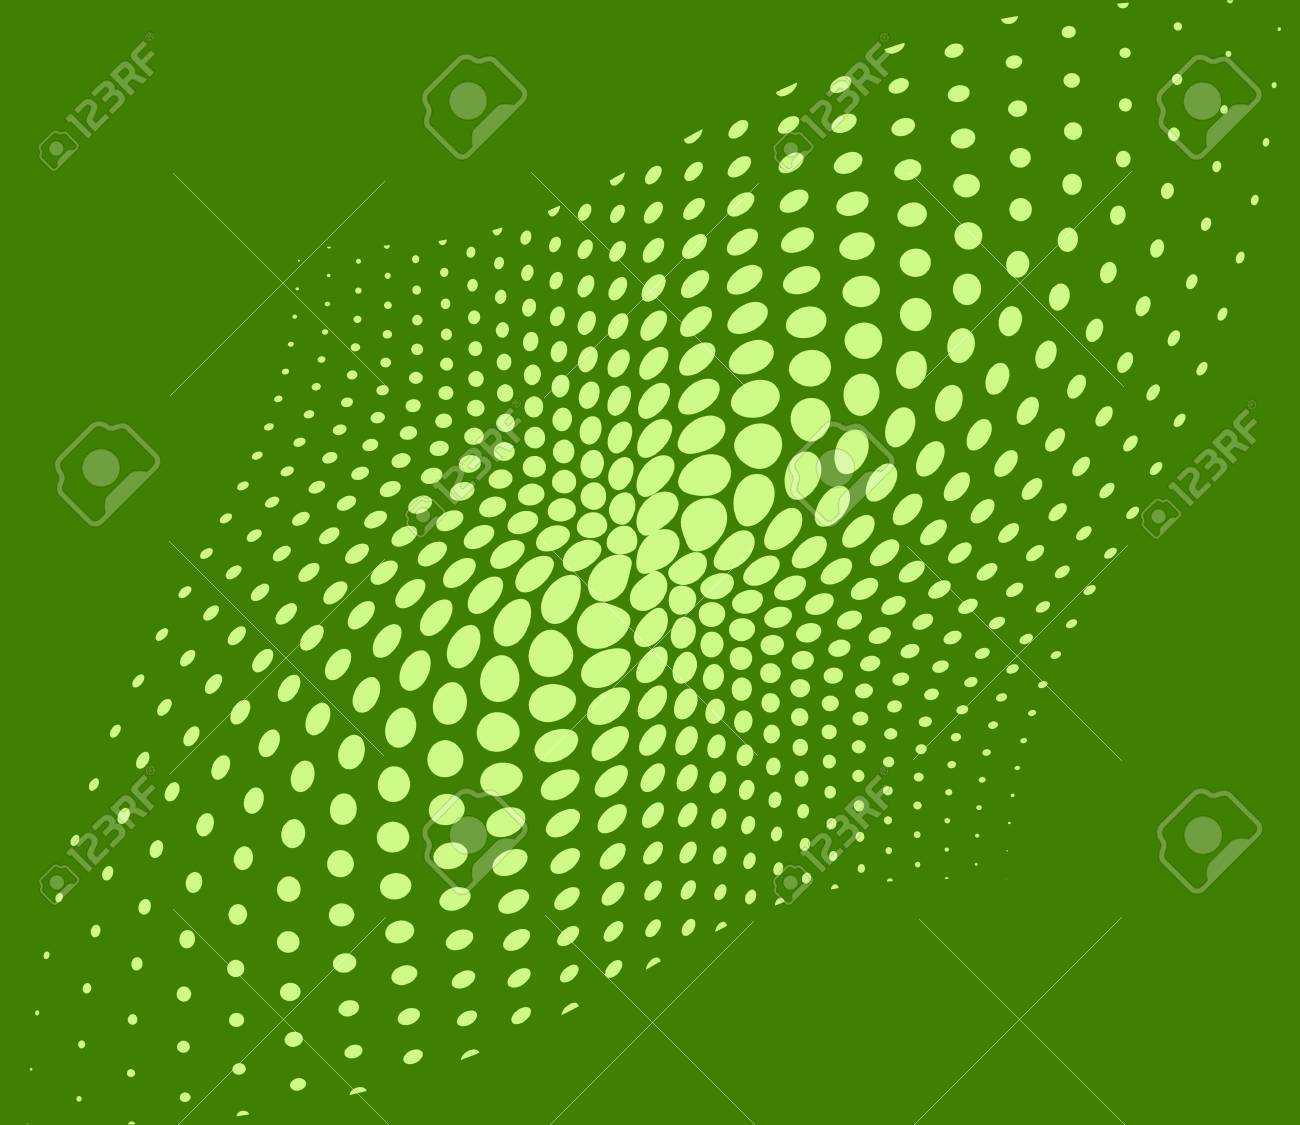 Green techno dots abstract background Stock Photo - 14414664